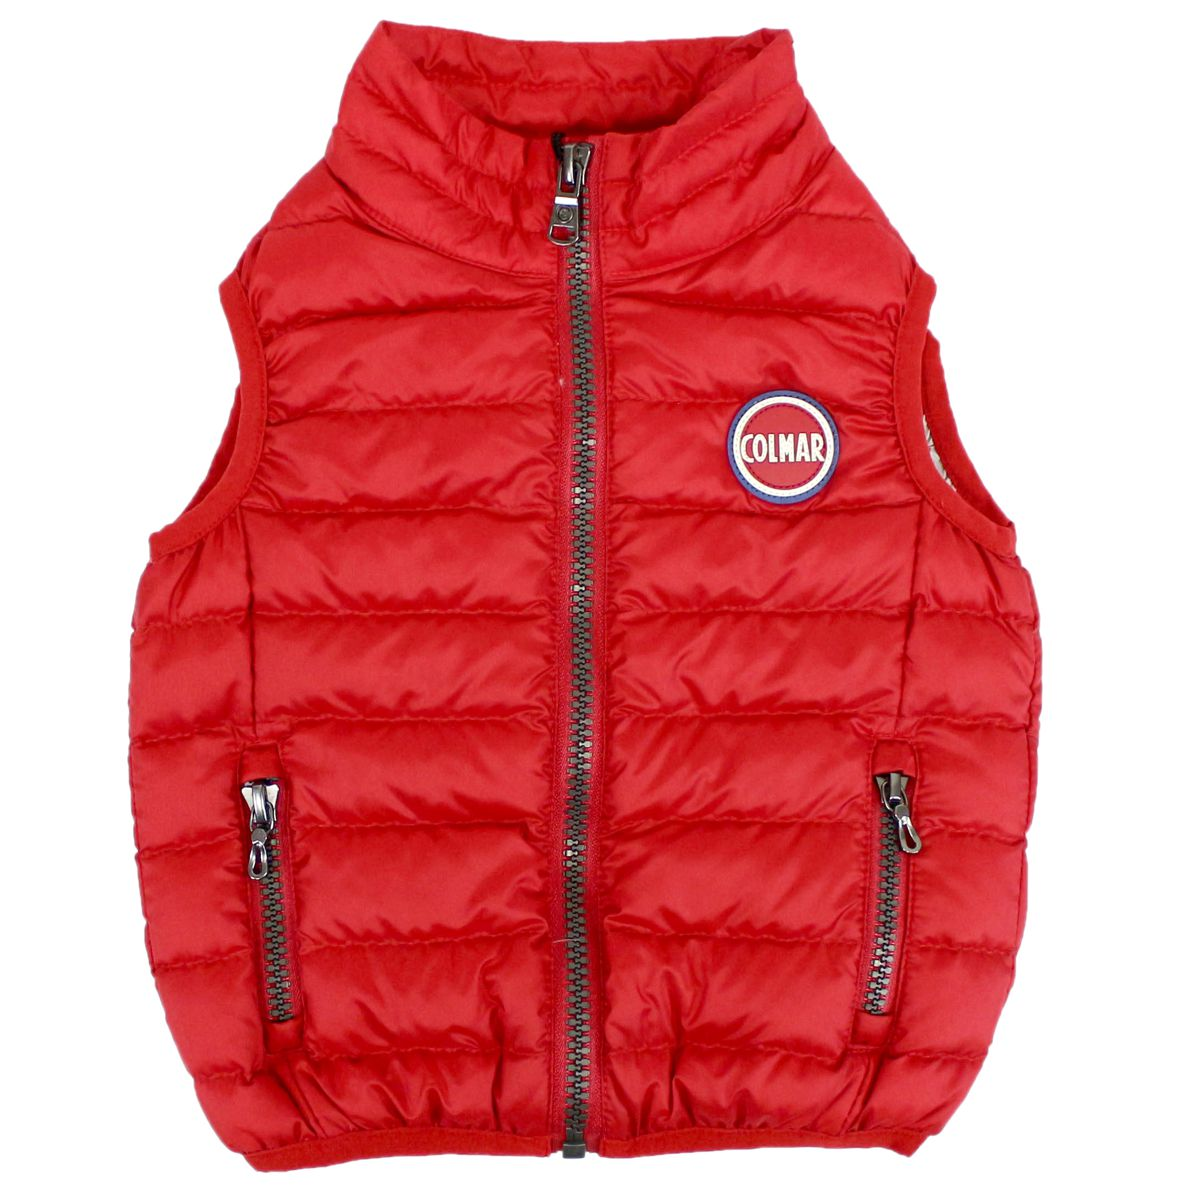 Duvet gilet in down jacket with zip Red Colmar